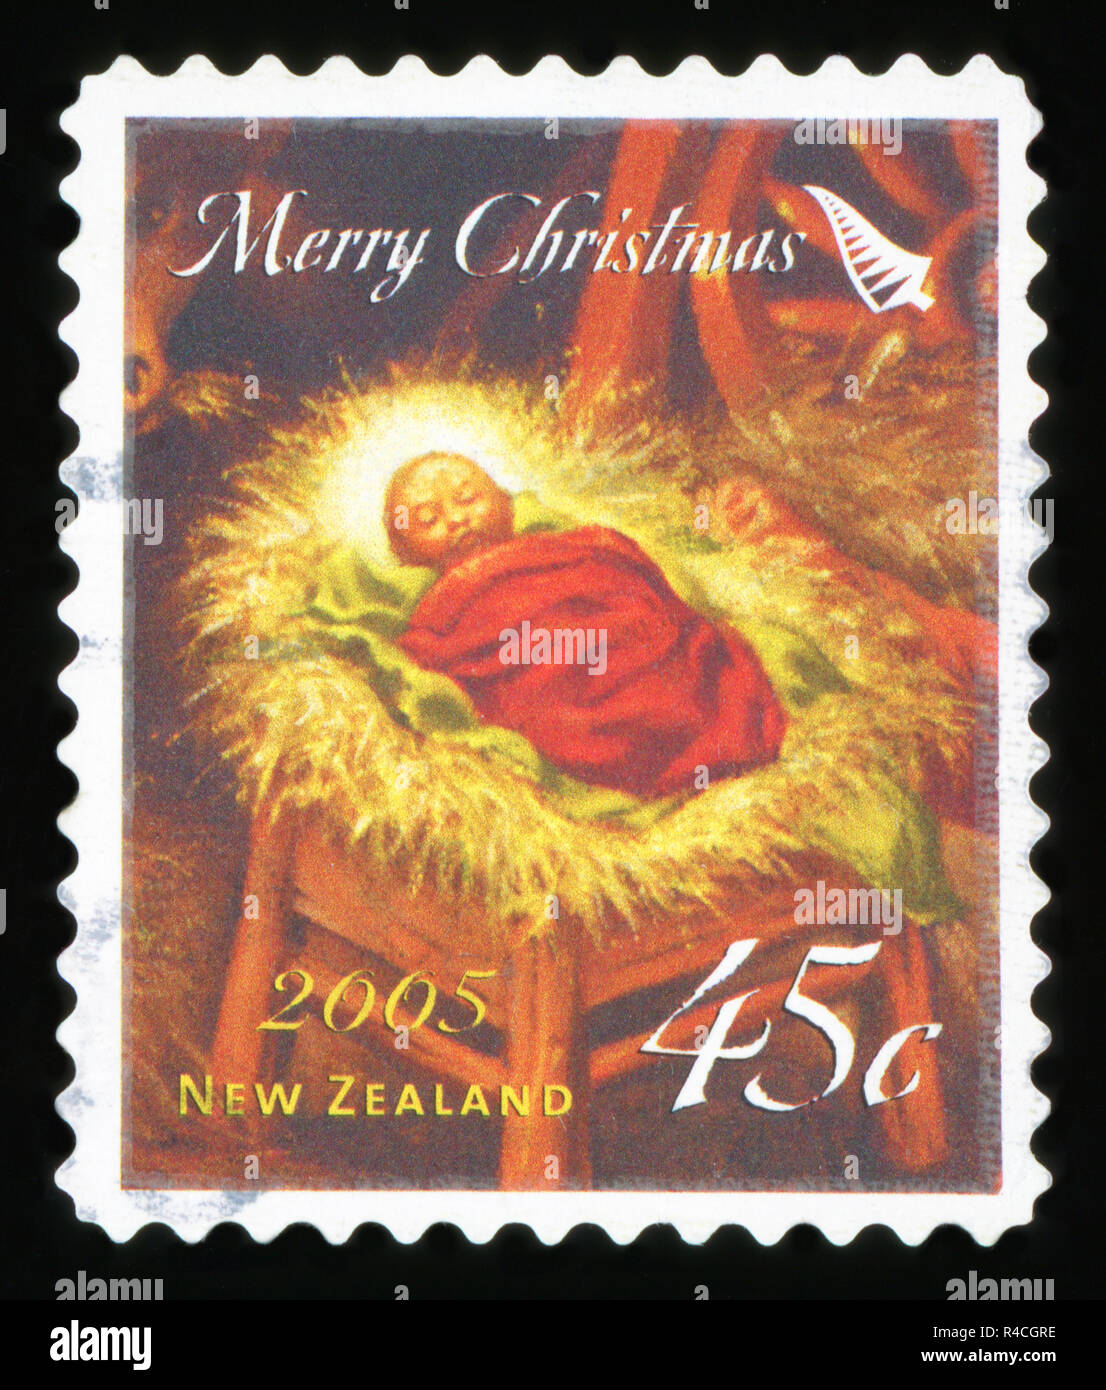 Religious Christmas Stamps 2021 Christmas Stamp With Nativity Scene High Resolution Stock Photography And Images Alamy